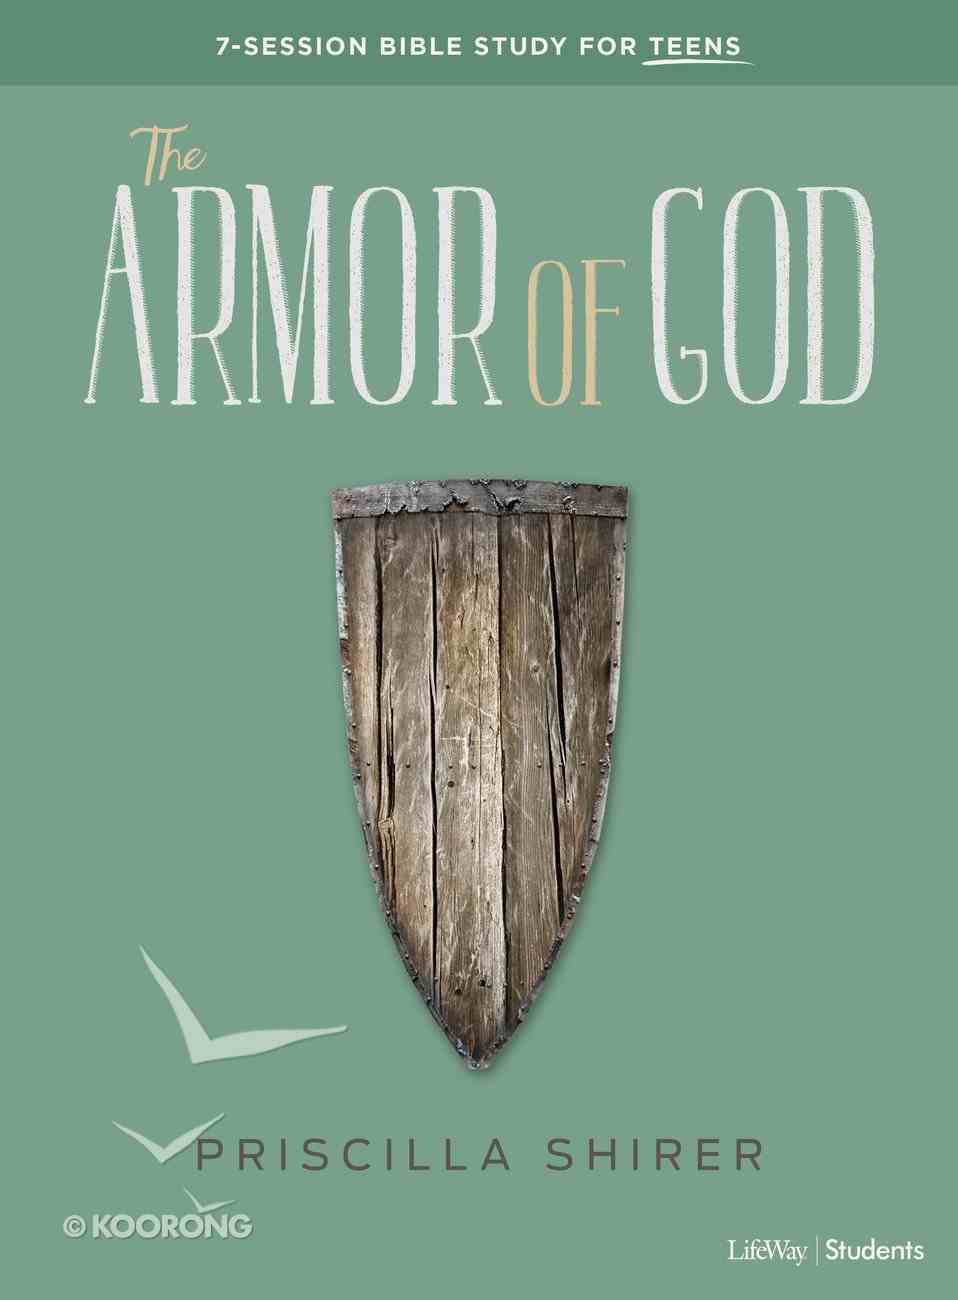 The Armor of God: 7-Session Bible Study For Teens (Teen Bible Study Book) Paperback